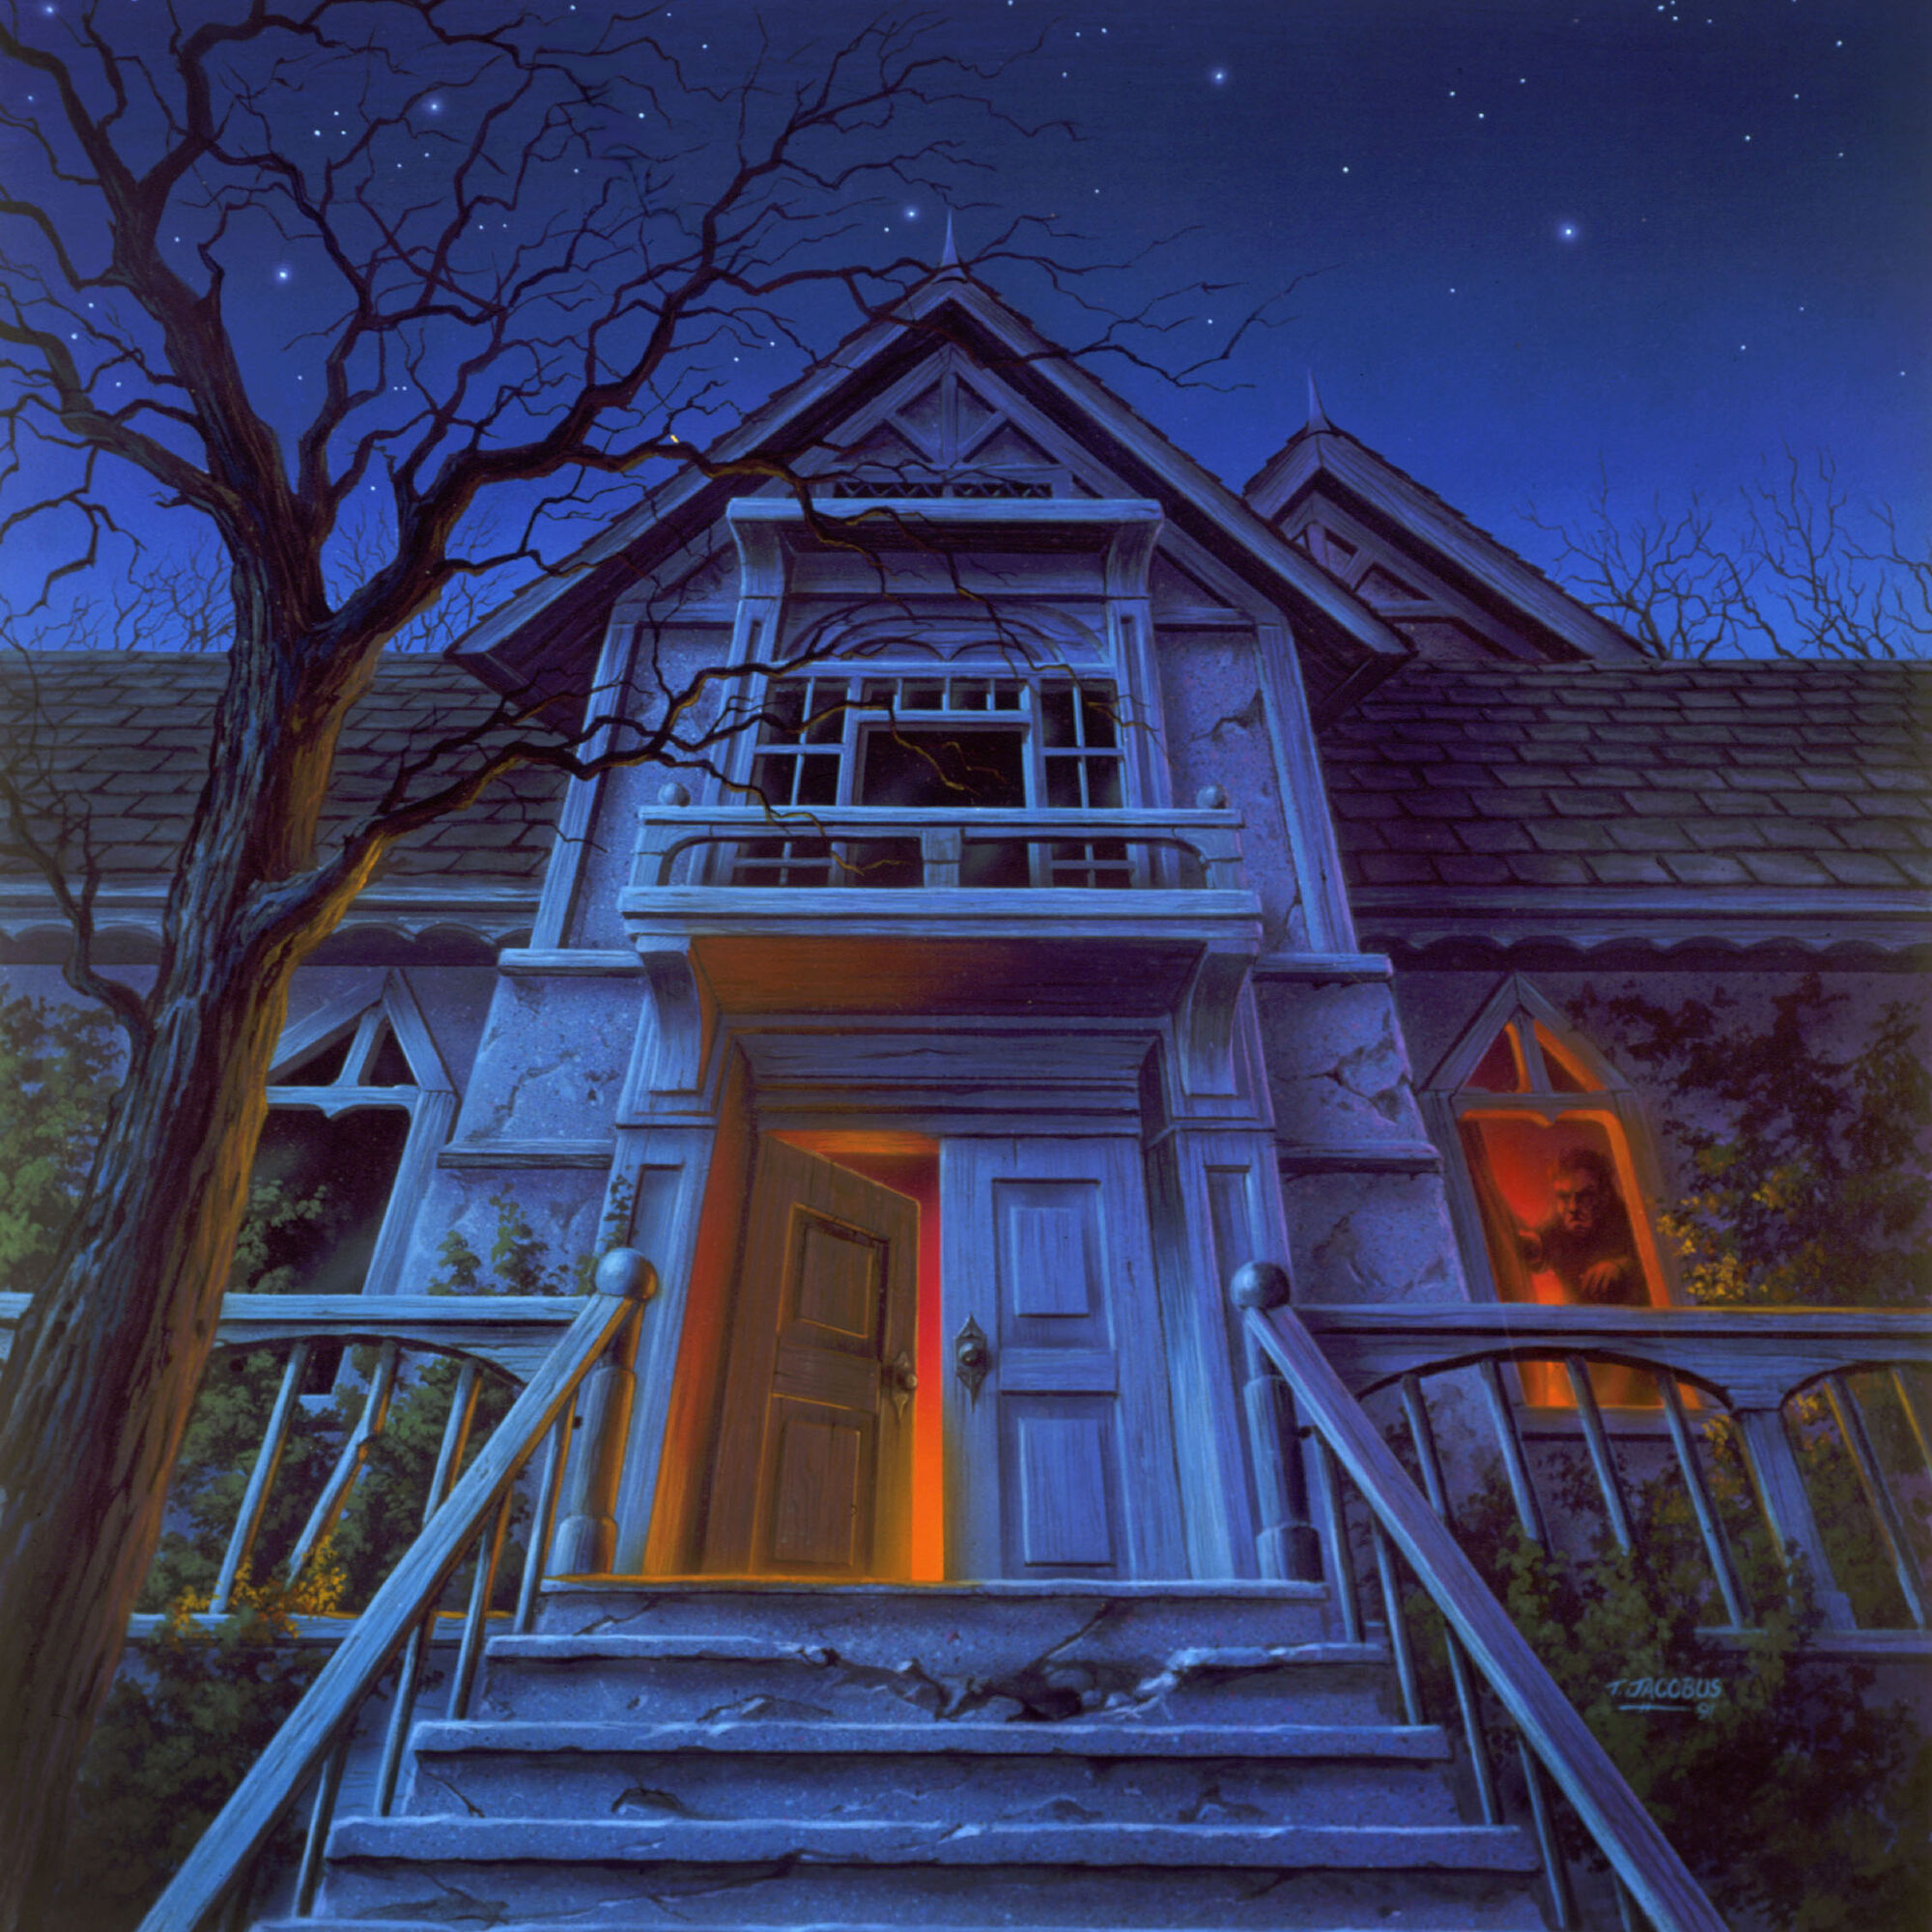 In the house of stone and light wikipedia - Welcome To Dead House Artwork